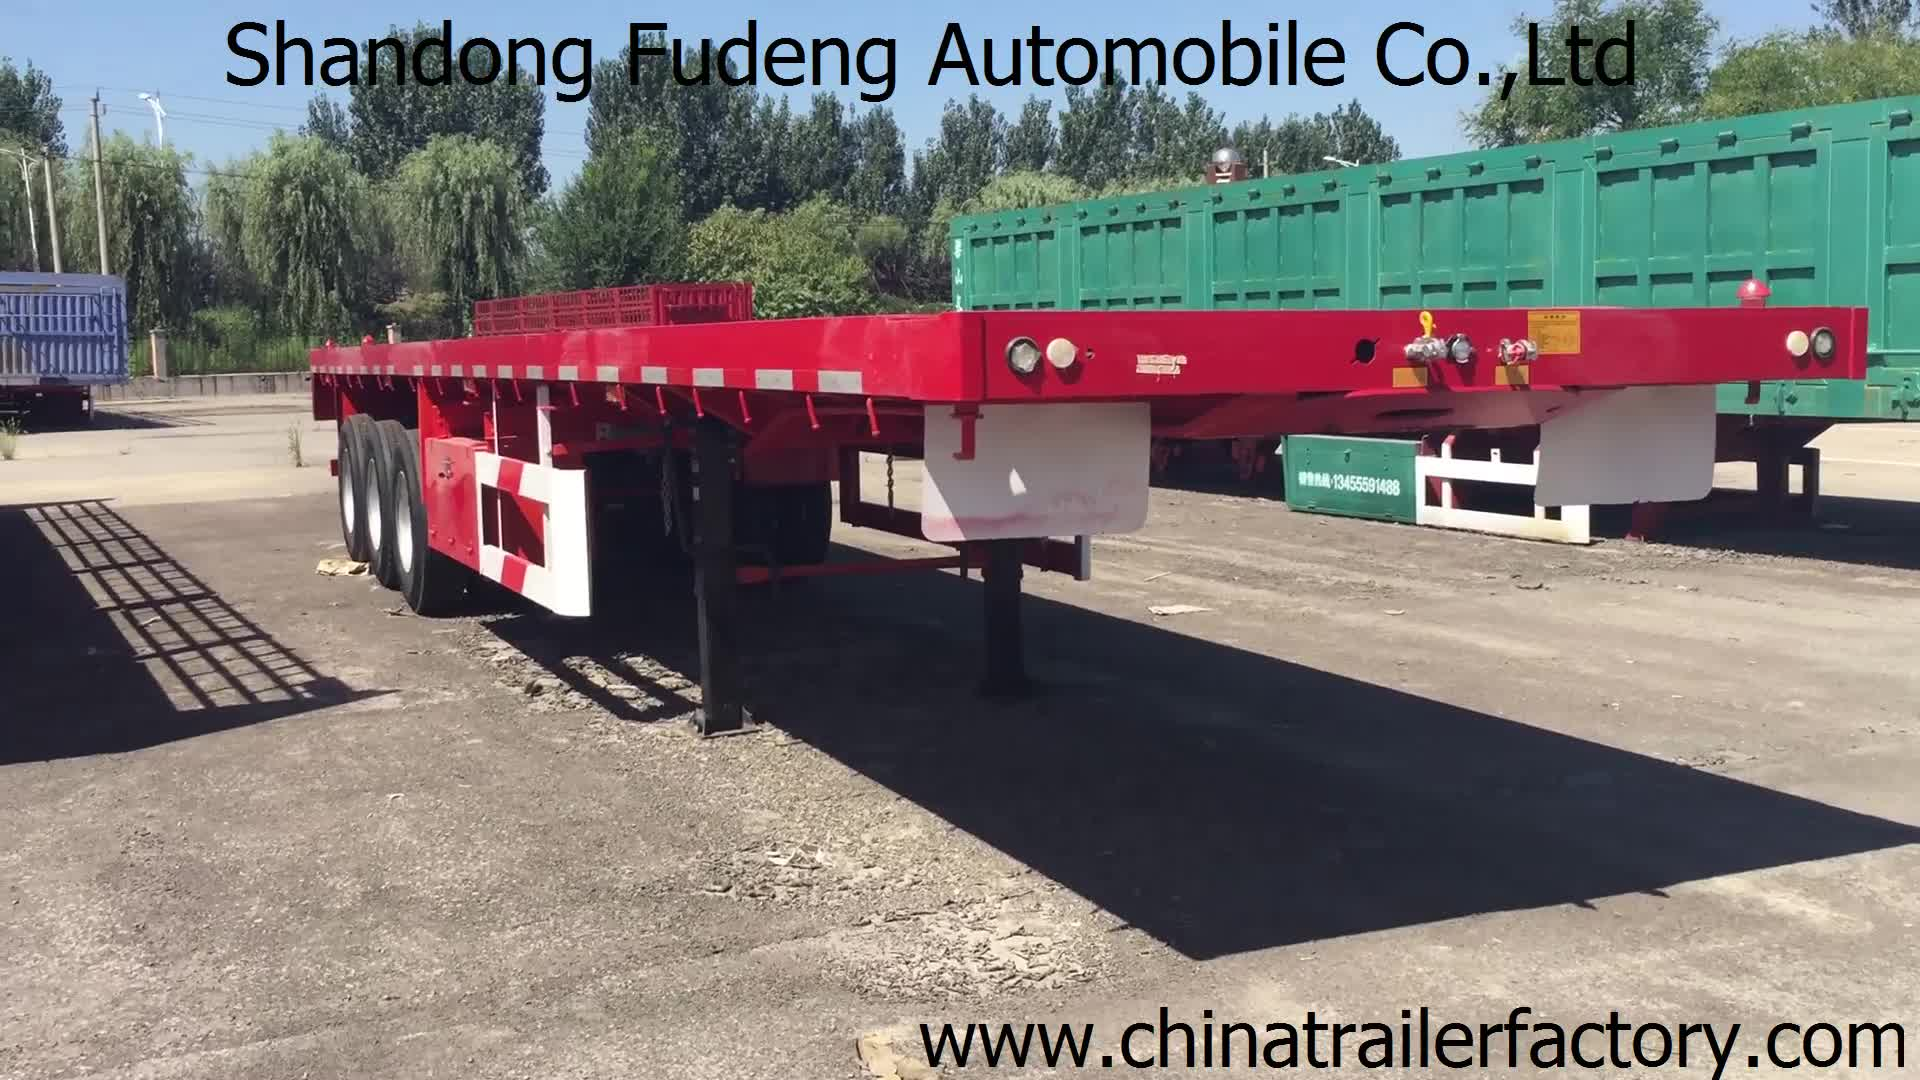 Giá rẻ 3 trục 40ft hoặc 20ft sử dụng trailer container phẳng truck trailer và trailer bán container cho bán